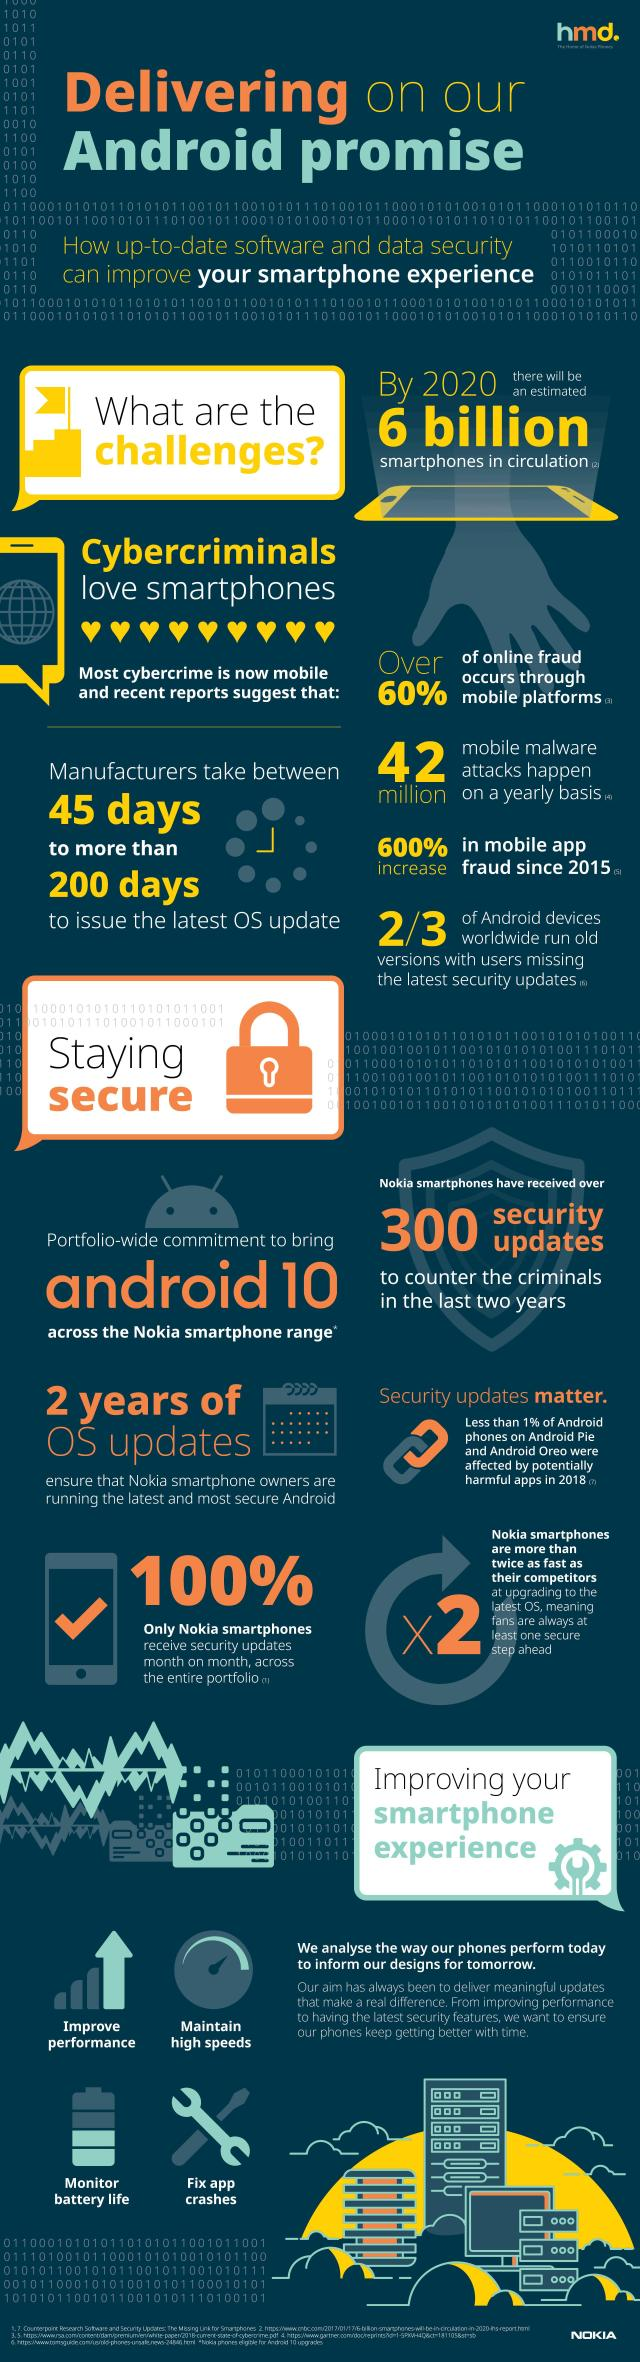 Android Promise Infographic.jpg